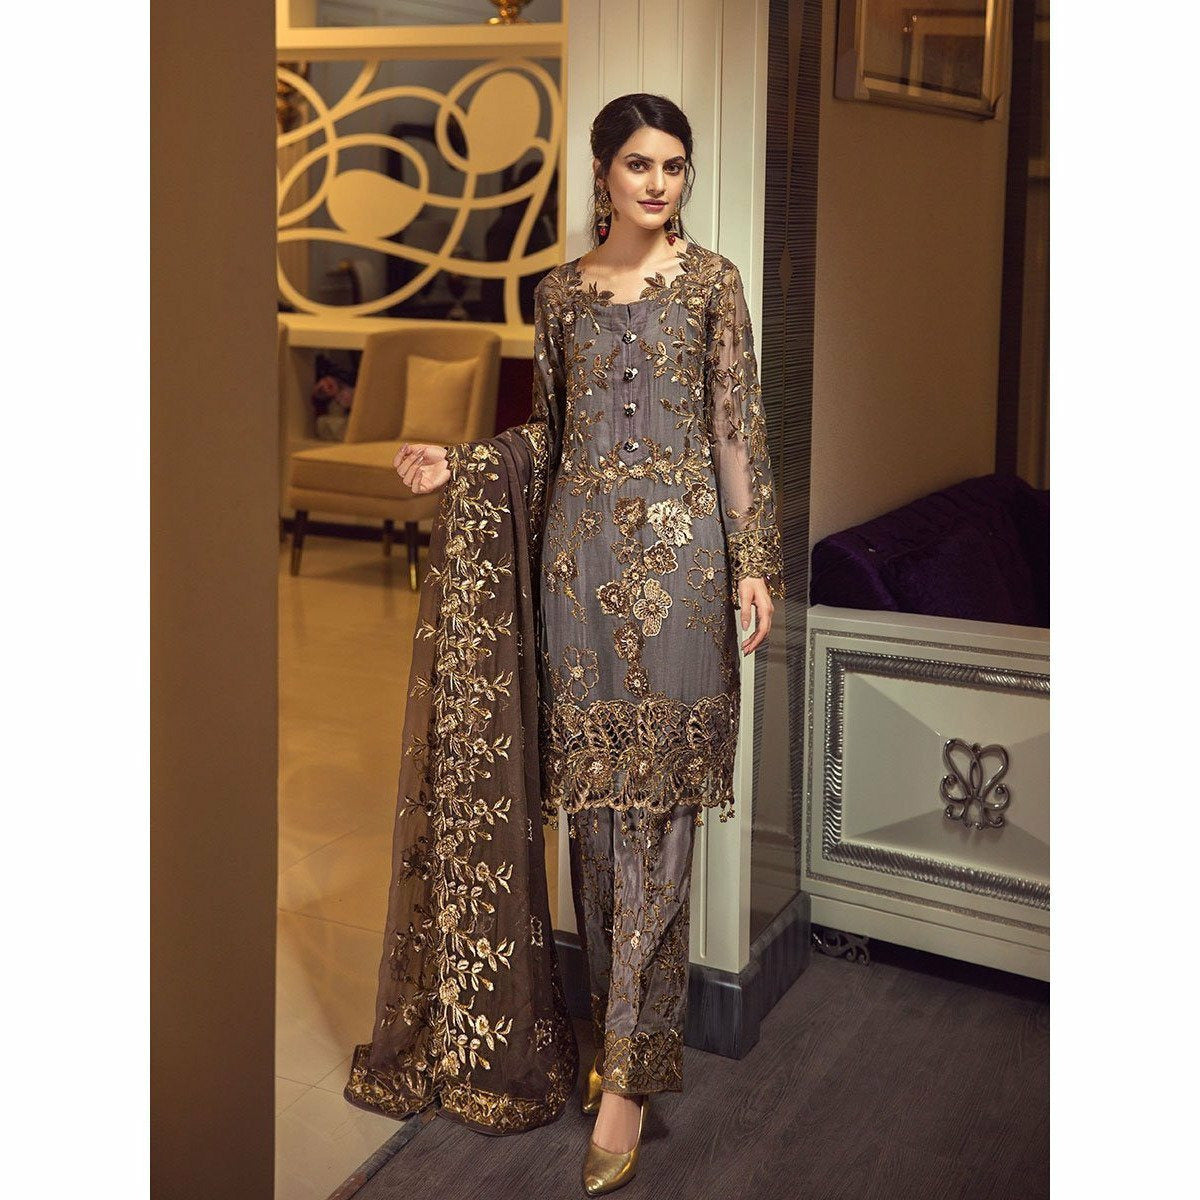 Pakistani Readymade Suits UK, Women clothing, Dresses for women, ladies trouser suits for weddings